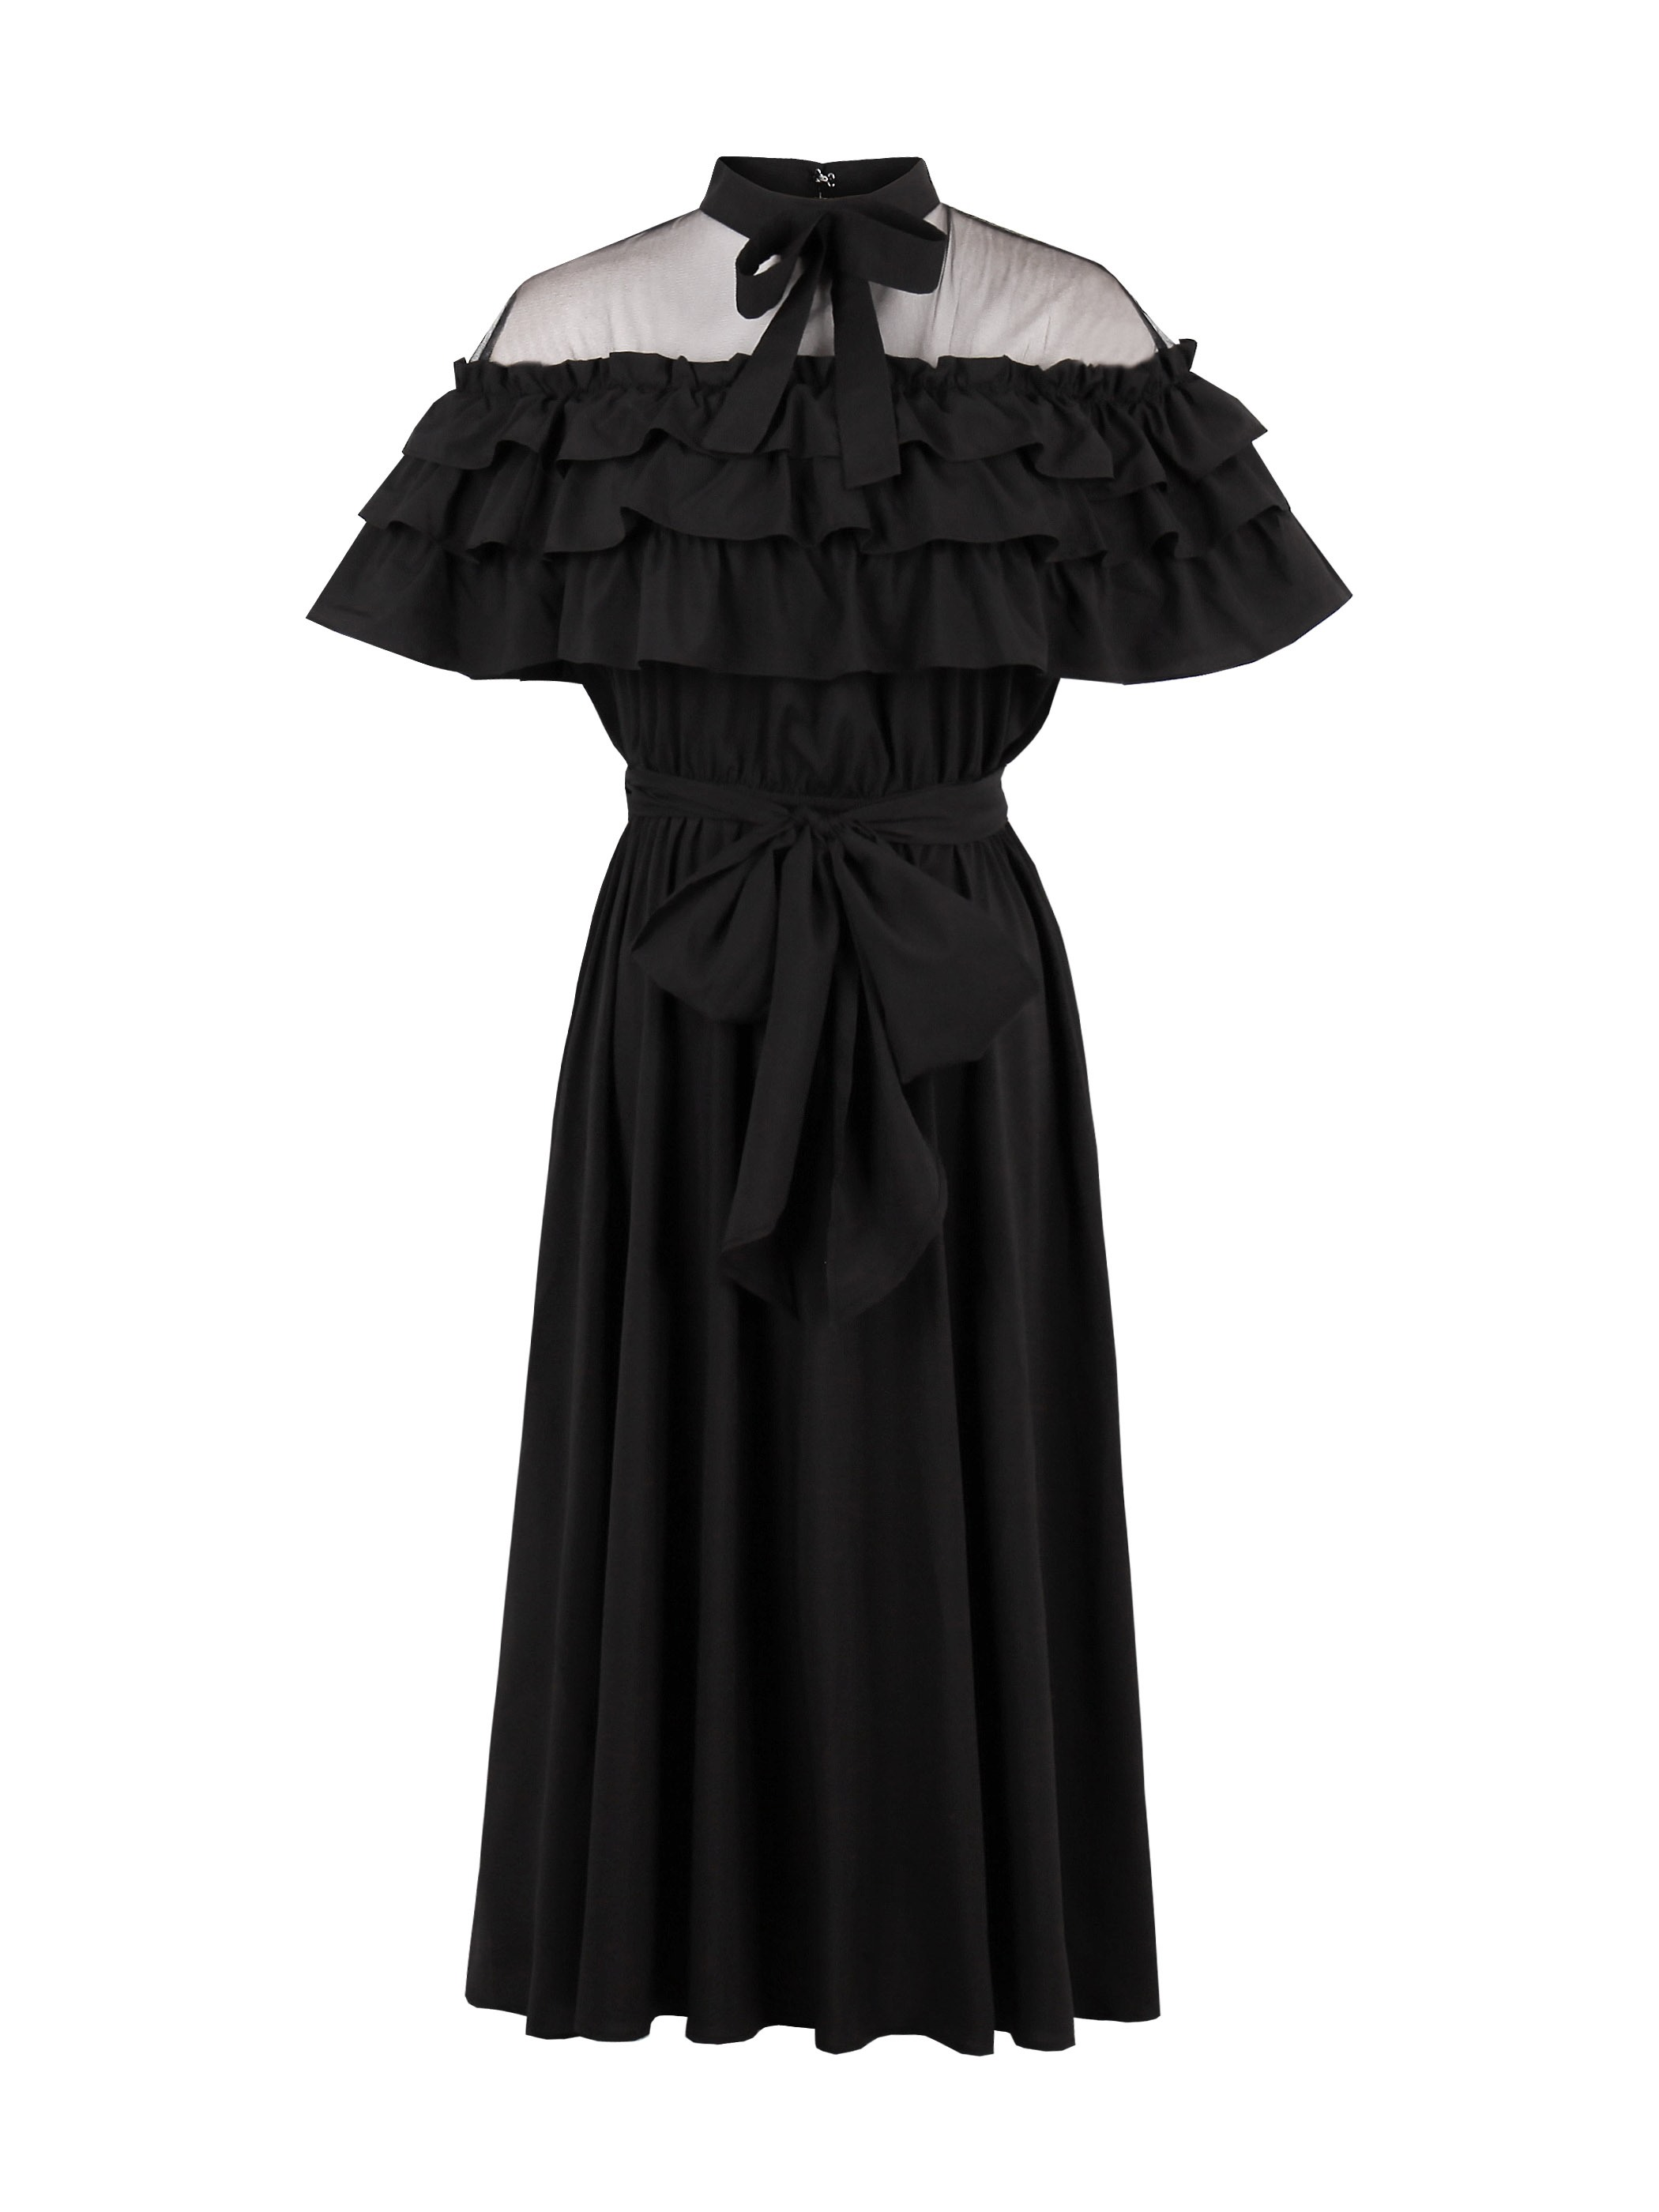 Ericdress Bowknot Bowtie Mesh Lace-Up Frill Dress 12955082